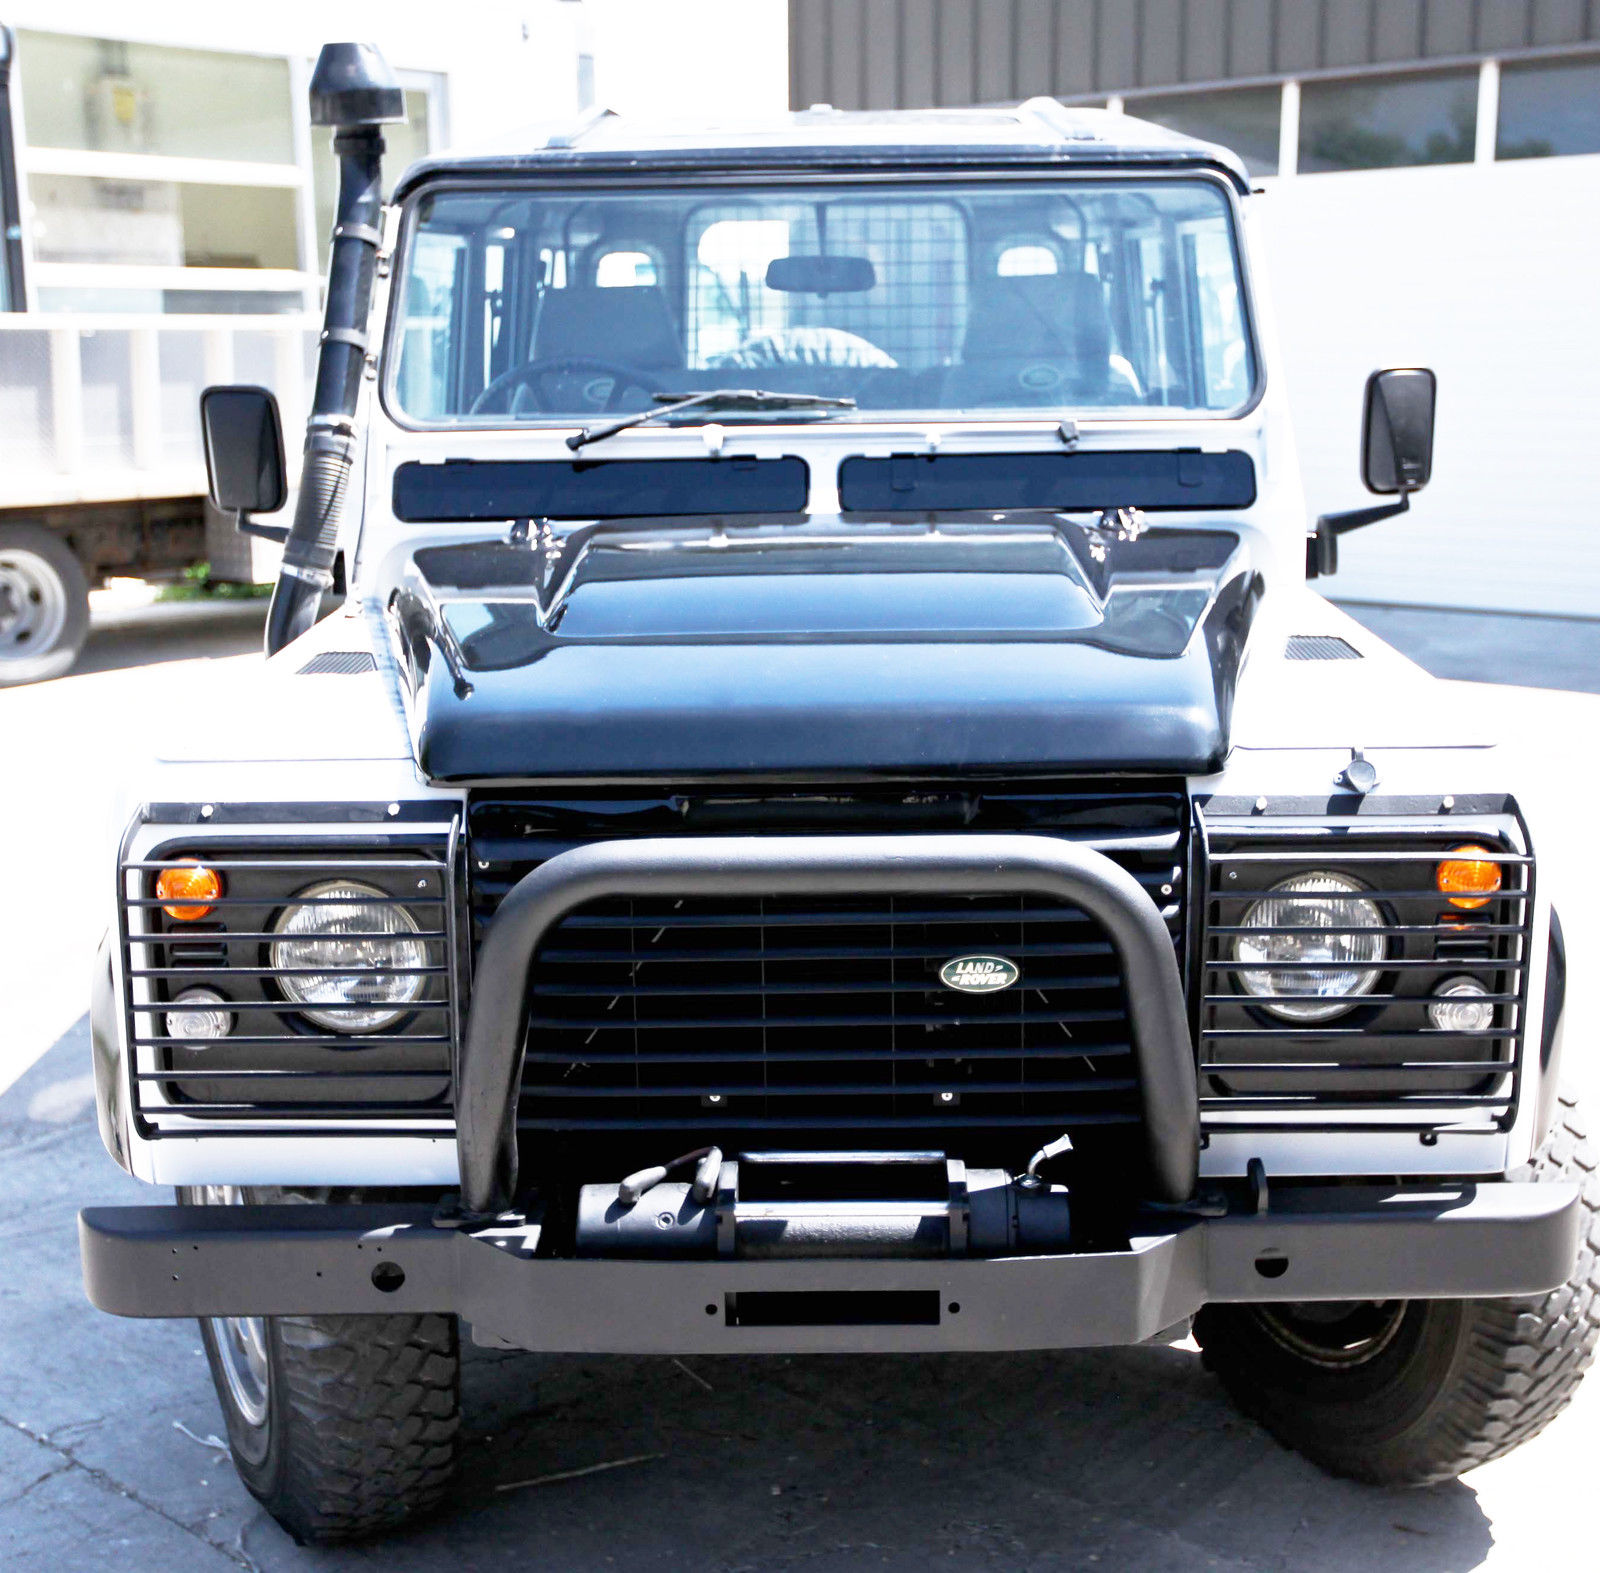 Land Rover Defender 110 For Sale: Land Rover Defender 110 With A Nice Restoration. Diesel